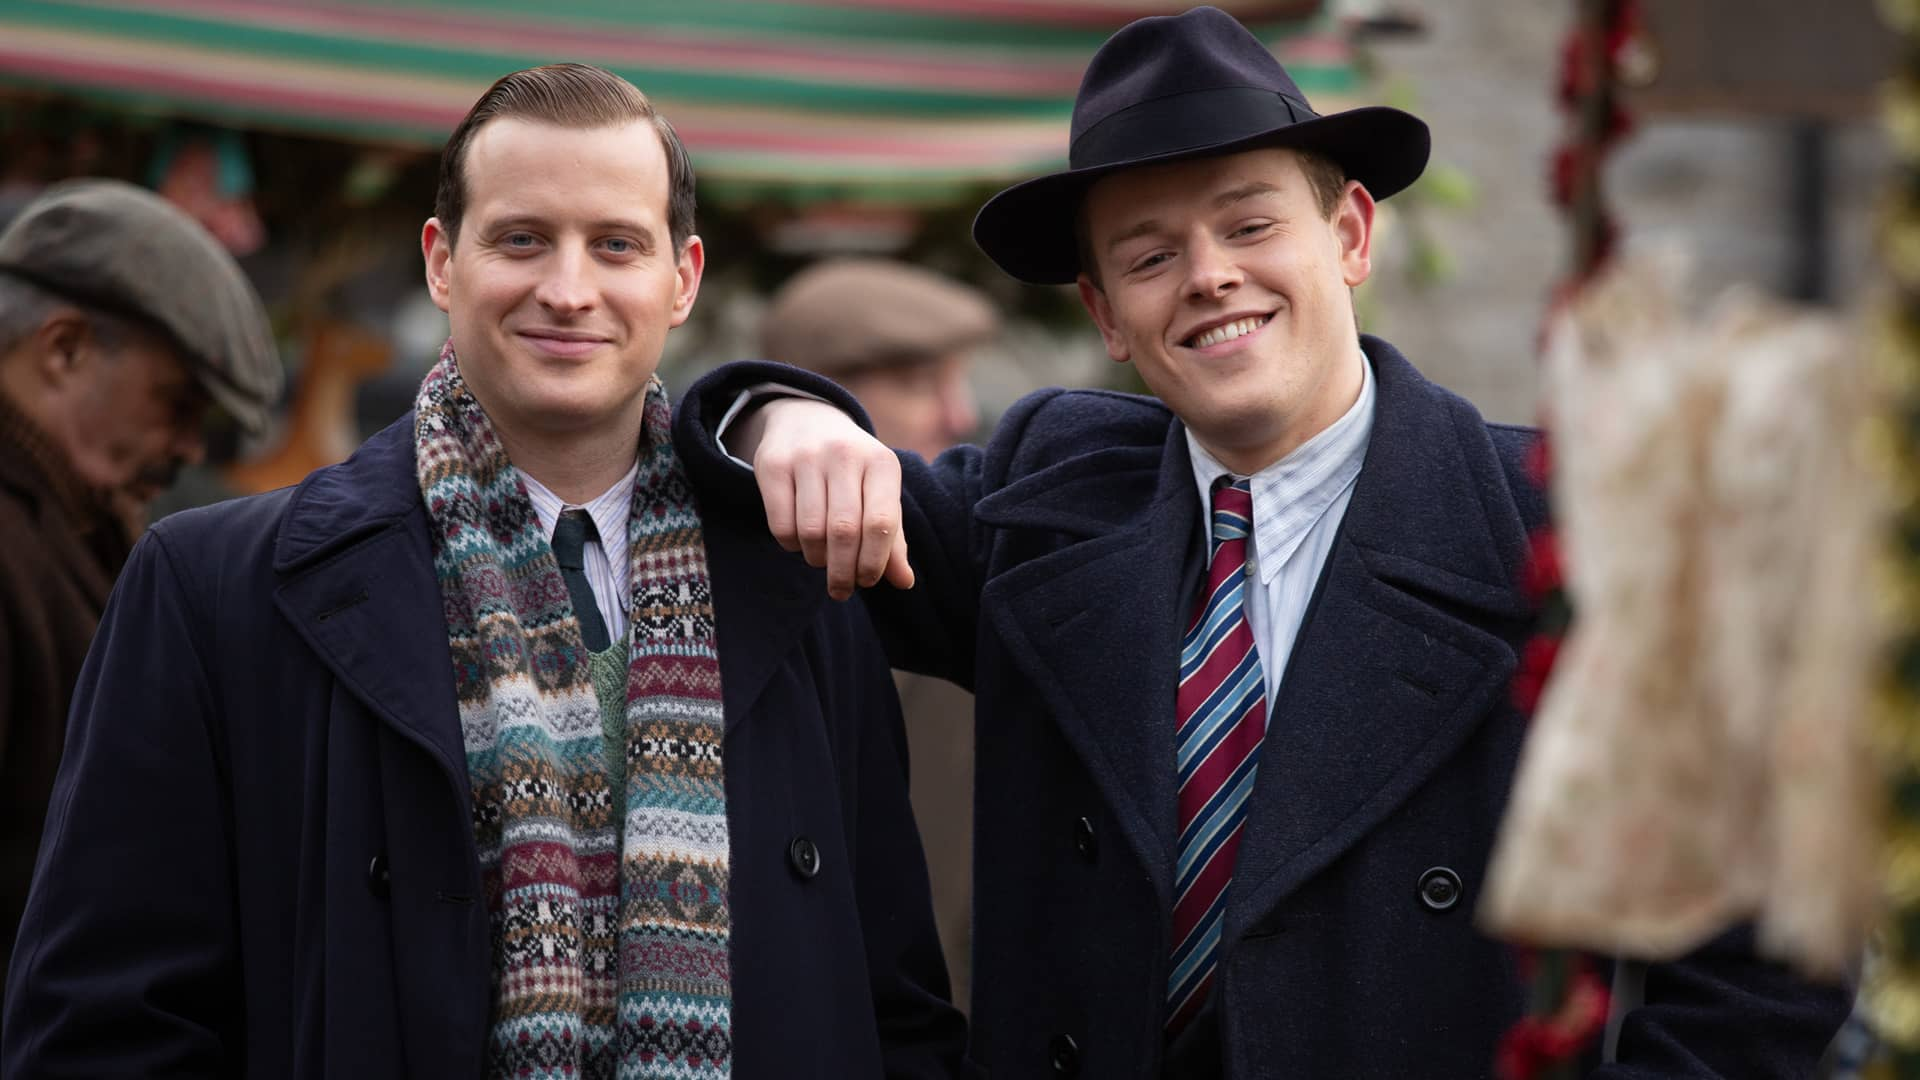 Nicholas Ralph and Callum Woodhouse in All Creatures Great and Small as seen on MASTERPIECE on PBS